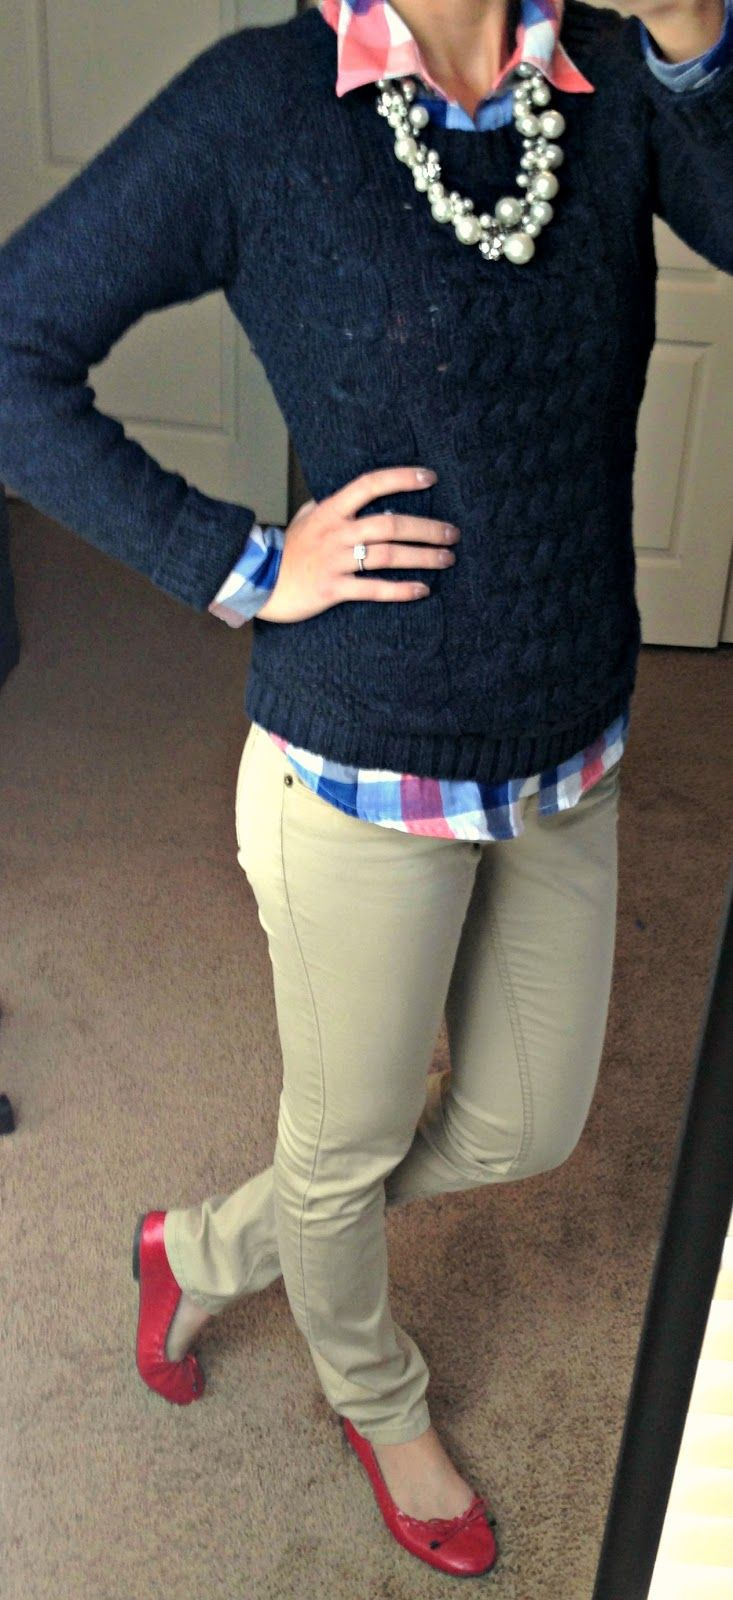 Large gingham shirt, statement necklace, navy cable knit, khakis, red flats. Cute! Couldn't pull it off but cute.